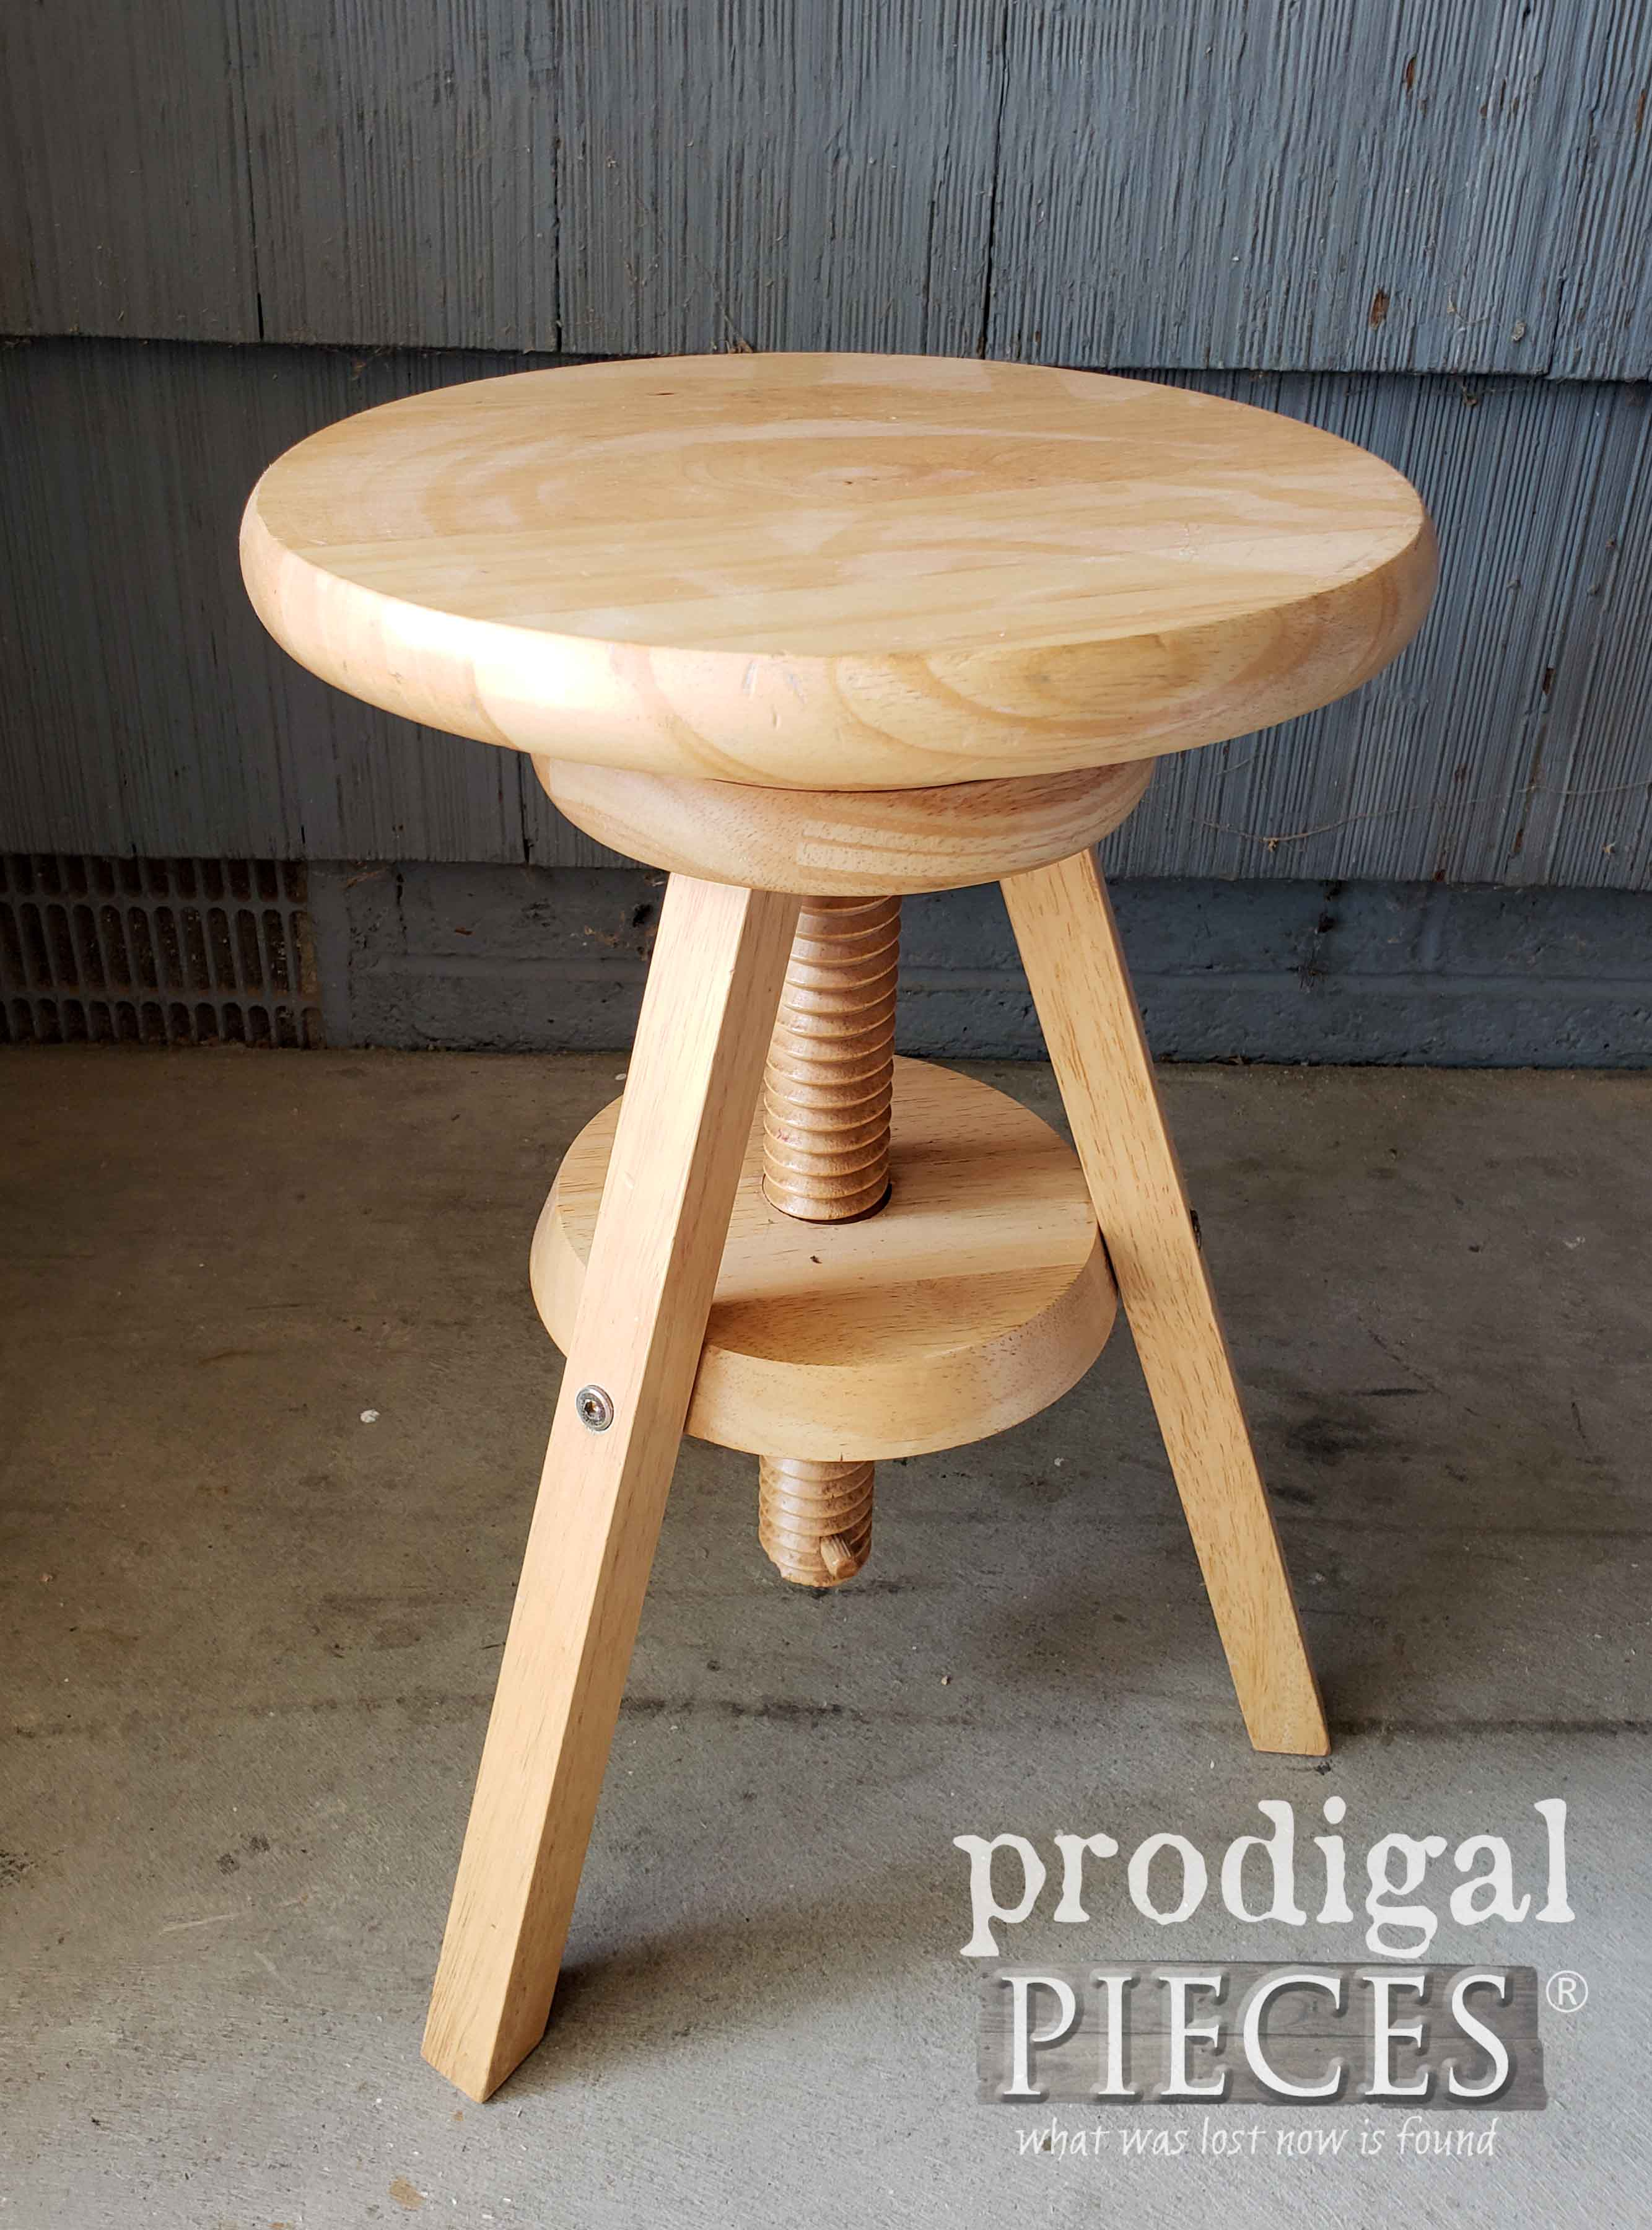 Thrifted Wooden Stool Before Makeover by Larissa of Prodigal Pieces | prodigalpieces.com